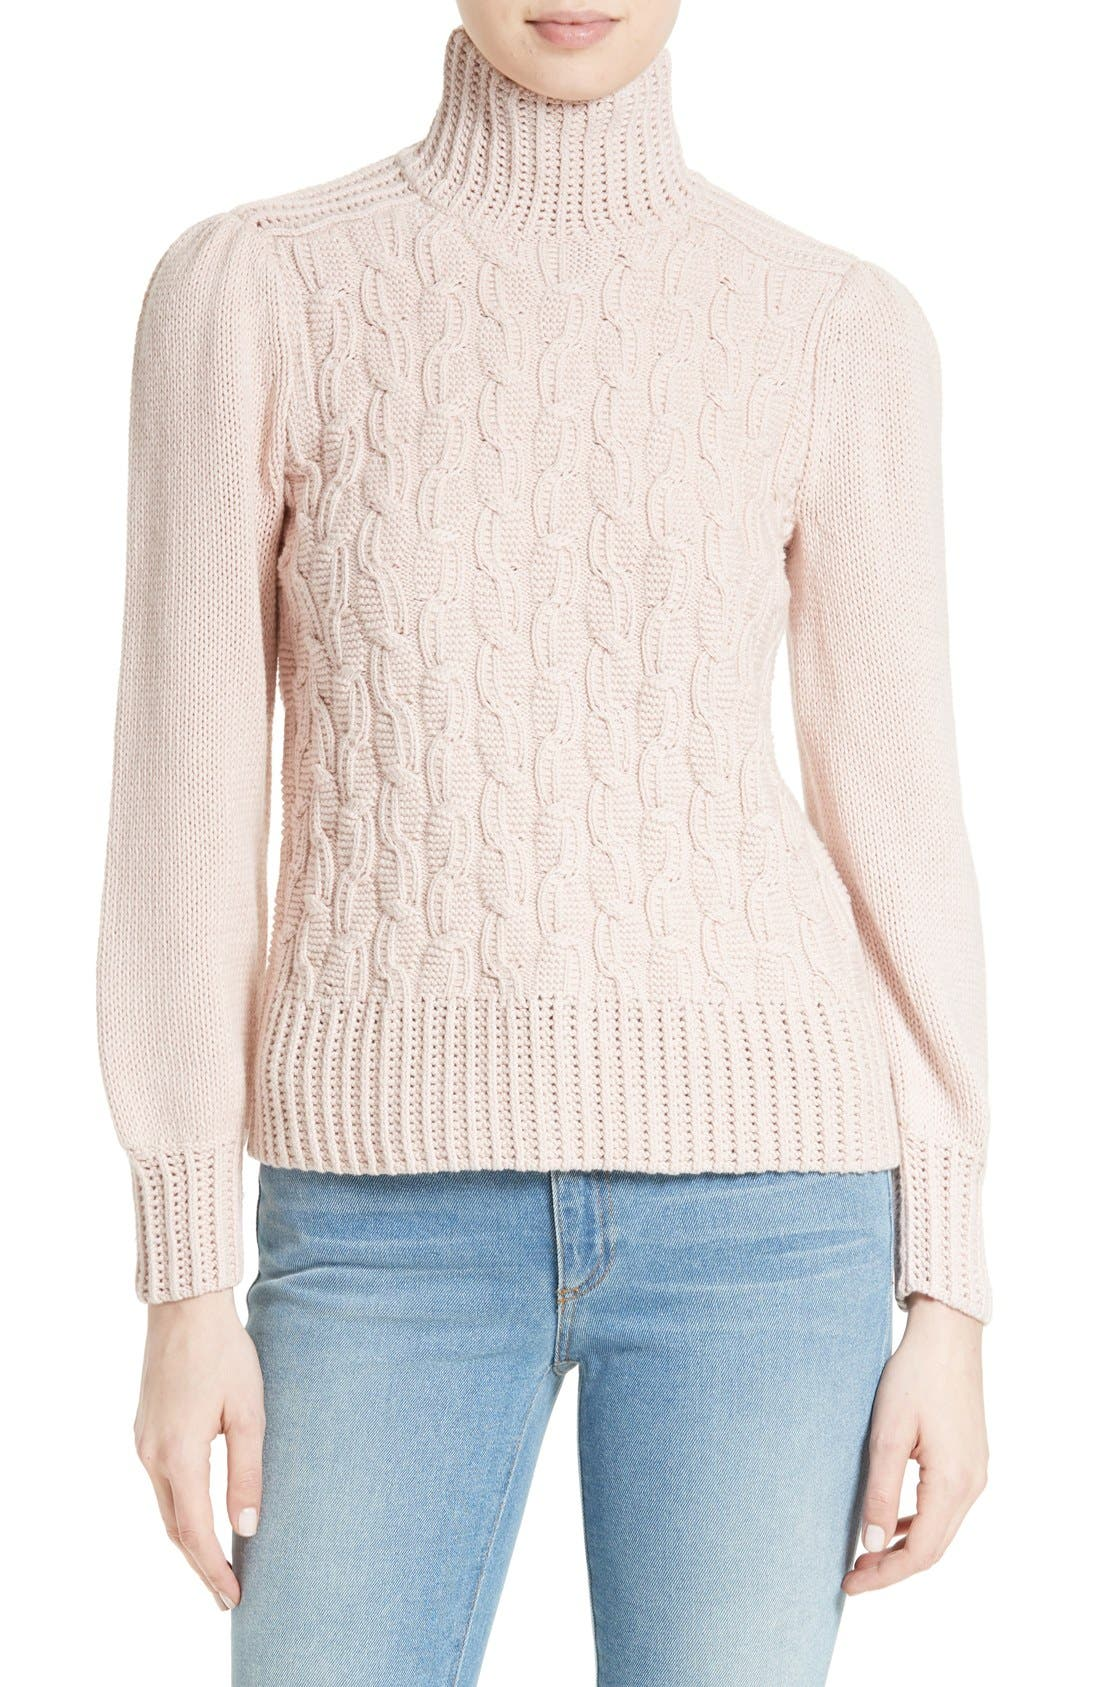 Main Image - La Vie Rebecca Taylor Cable Knit Turtleneck Sweater